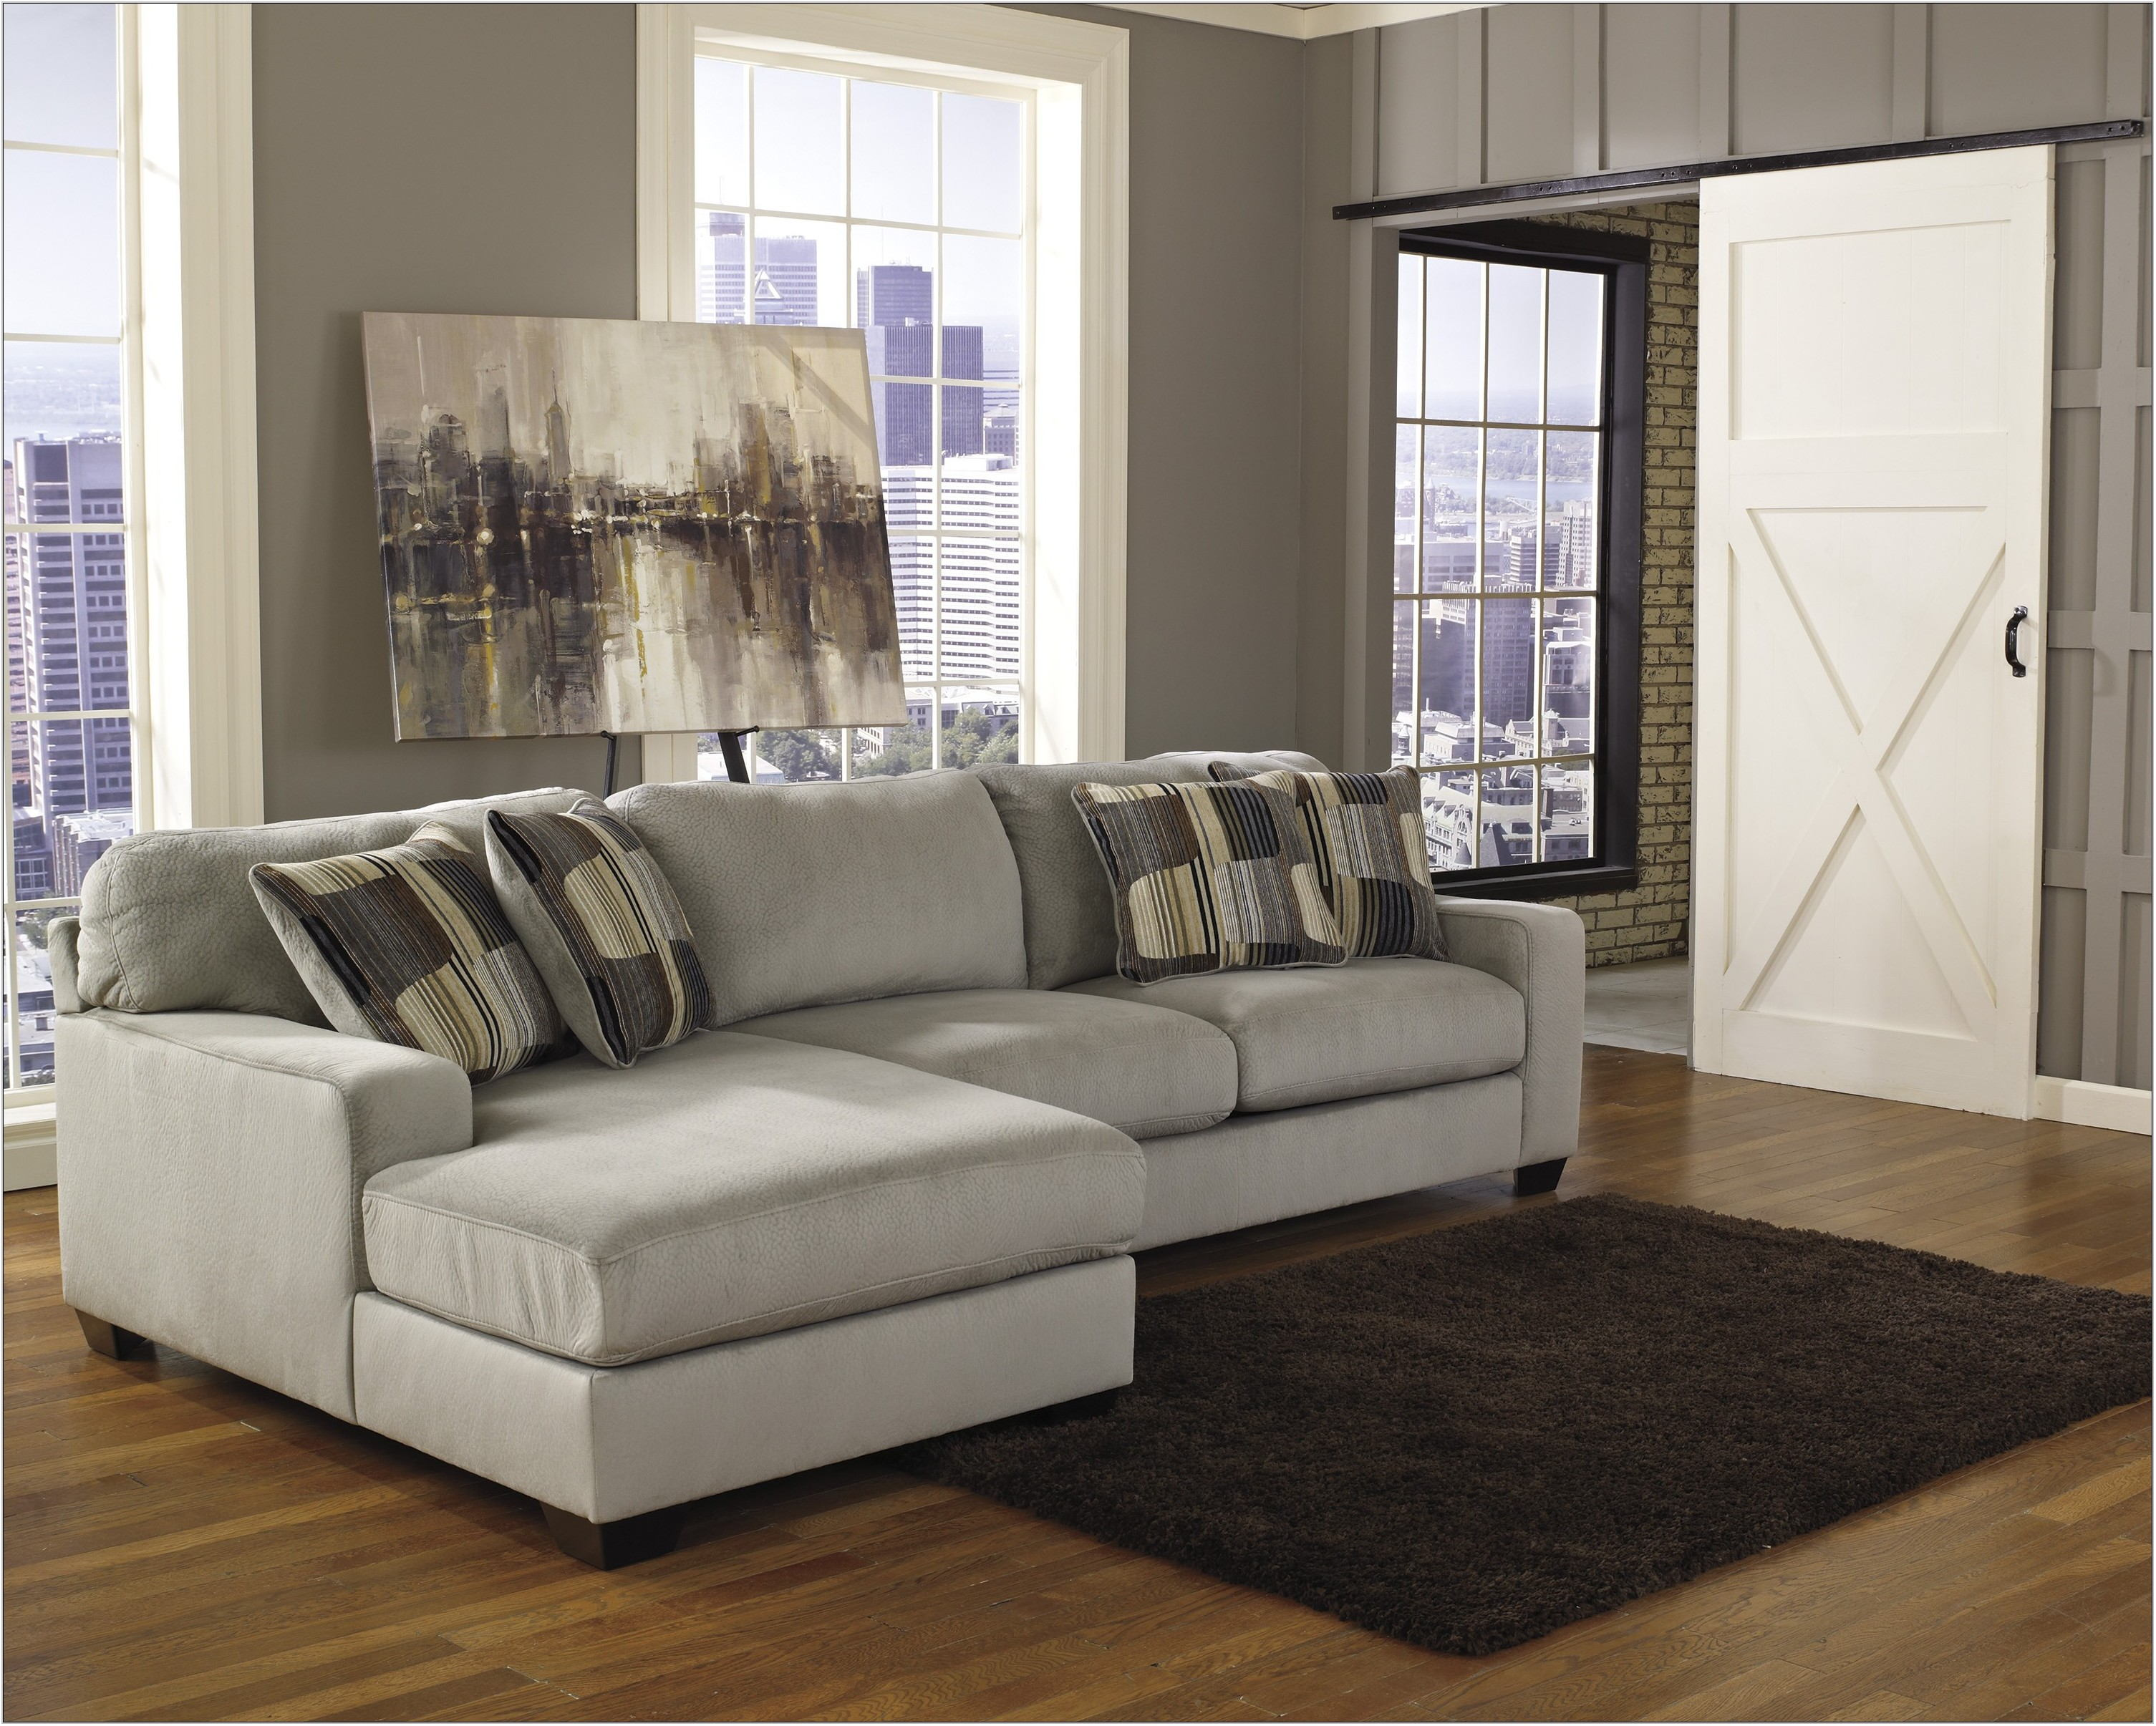 9x12 Area Rugs For Living Room